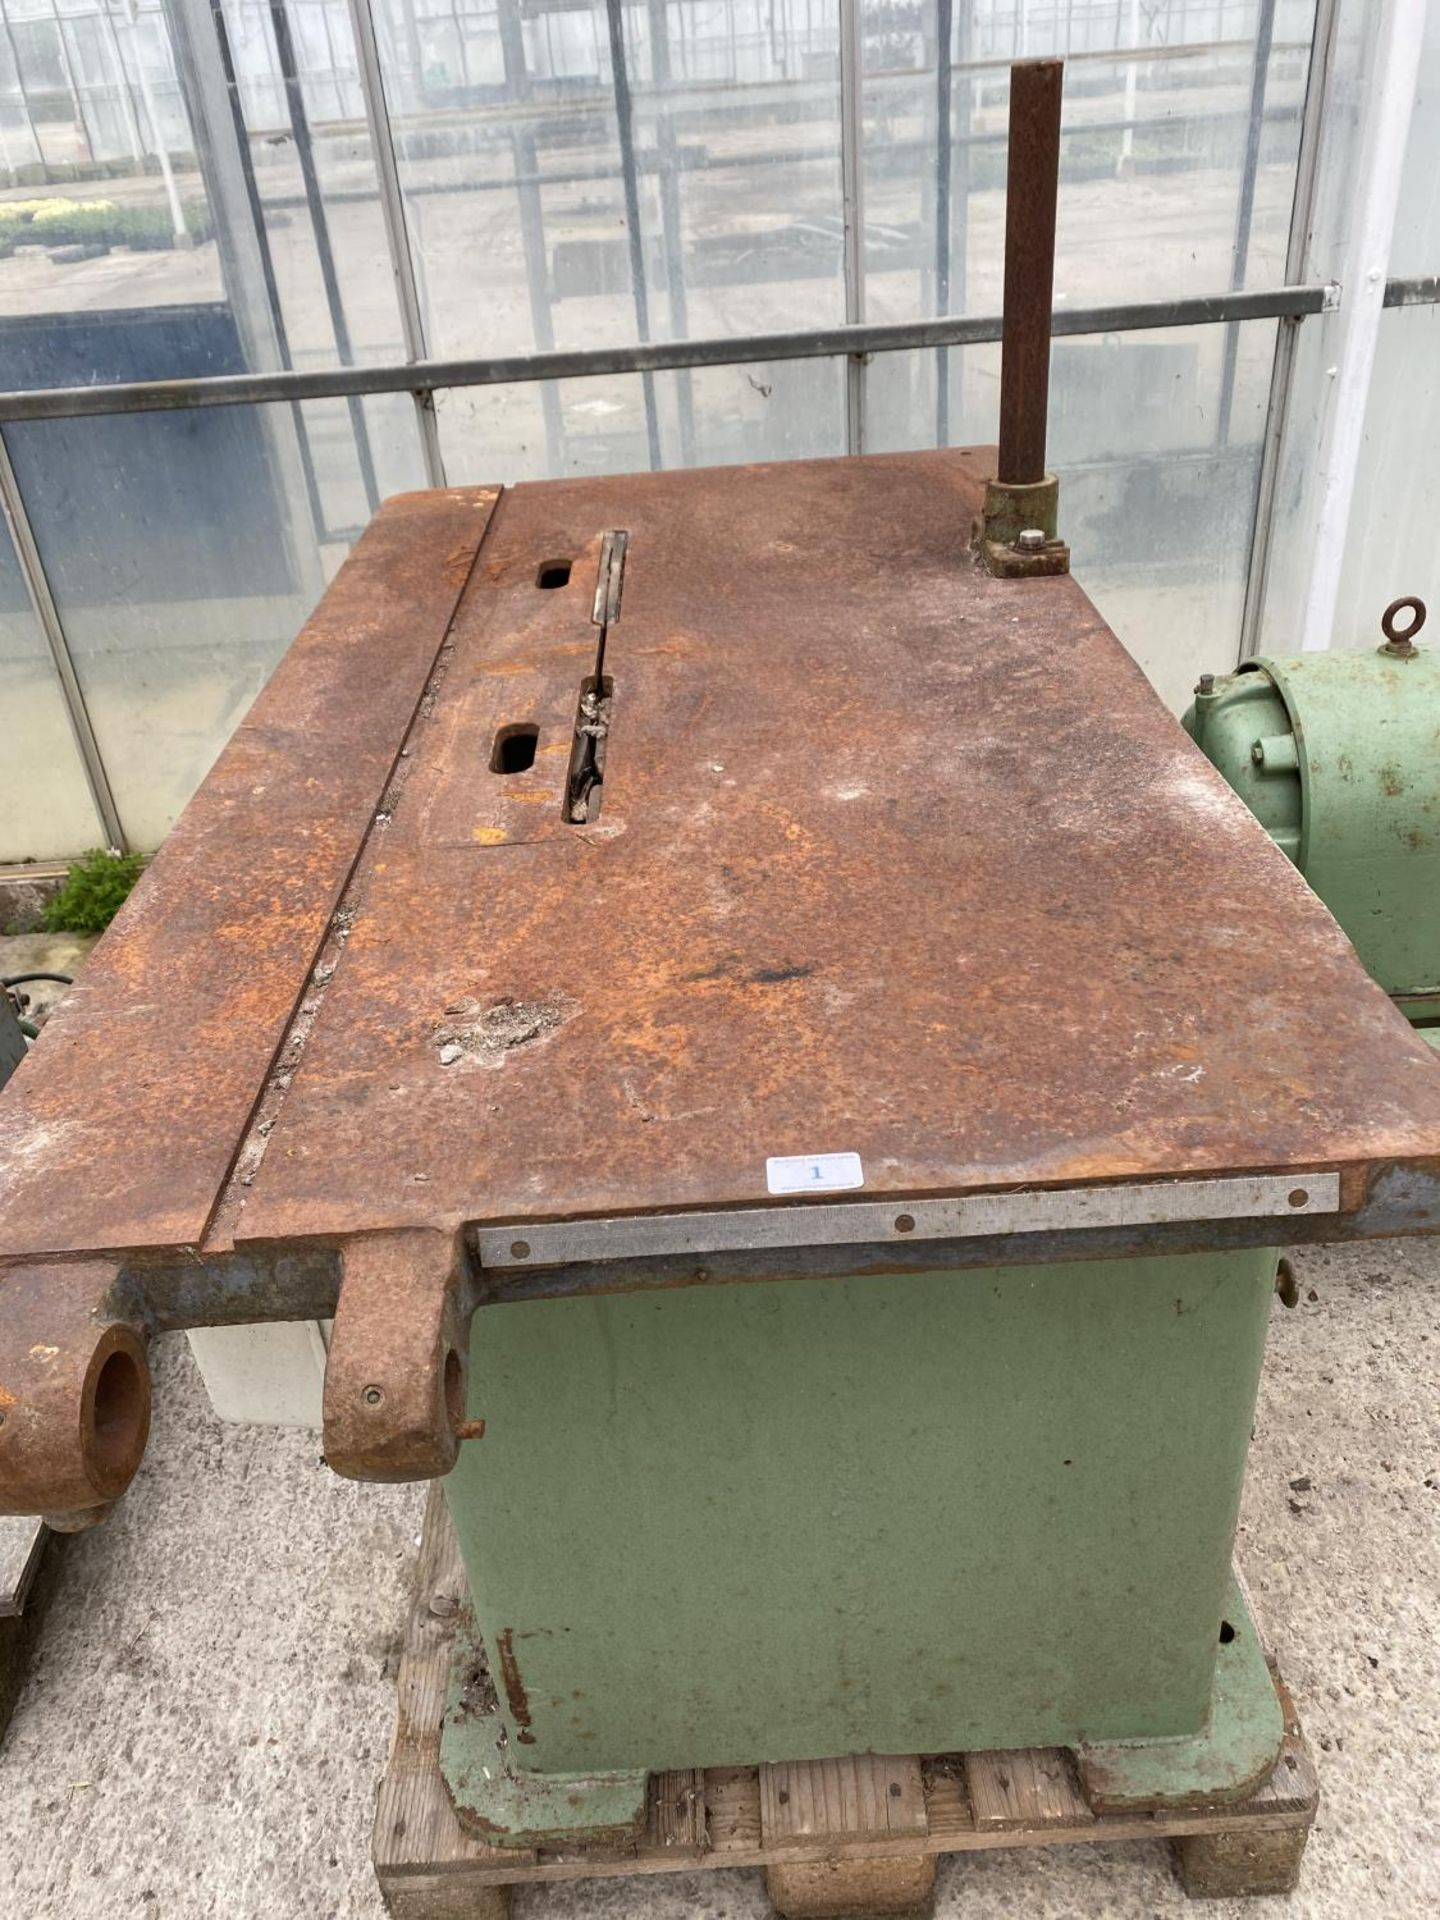 A WADKIN SAW BENCH WITH CAST IRON BASE - BELIEVED WORKING BUT NO WARRANTY 3 PAHSE - NO VAT - Image 5 of 6